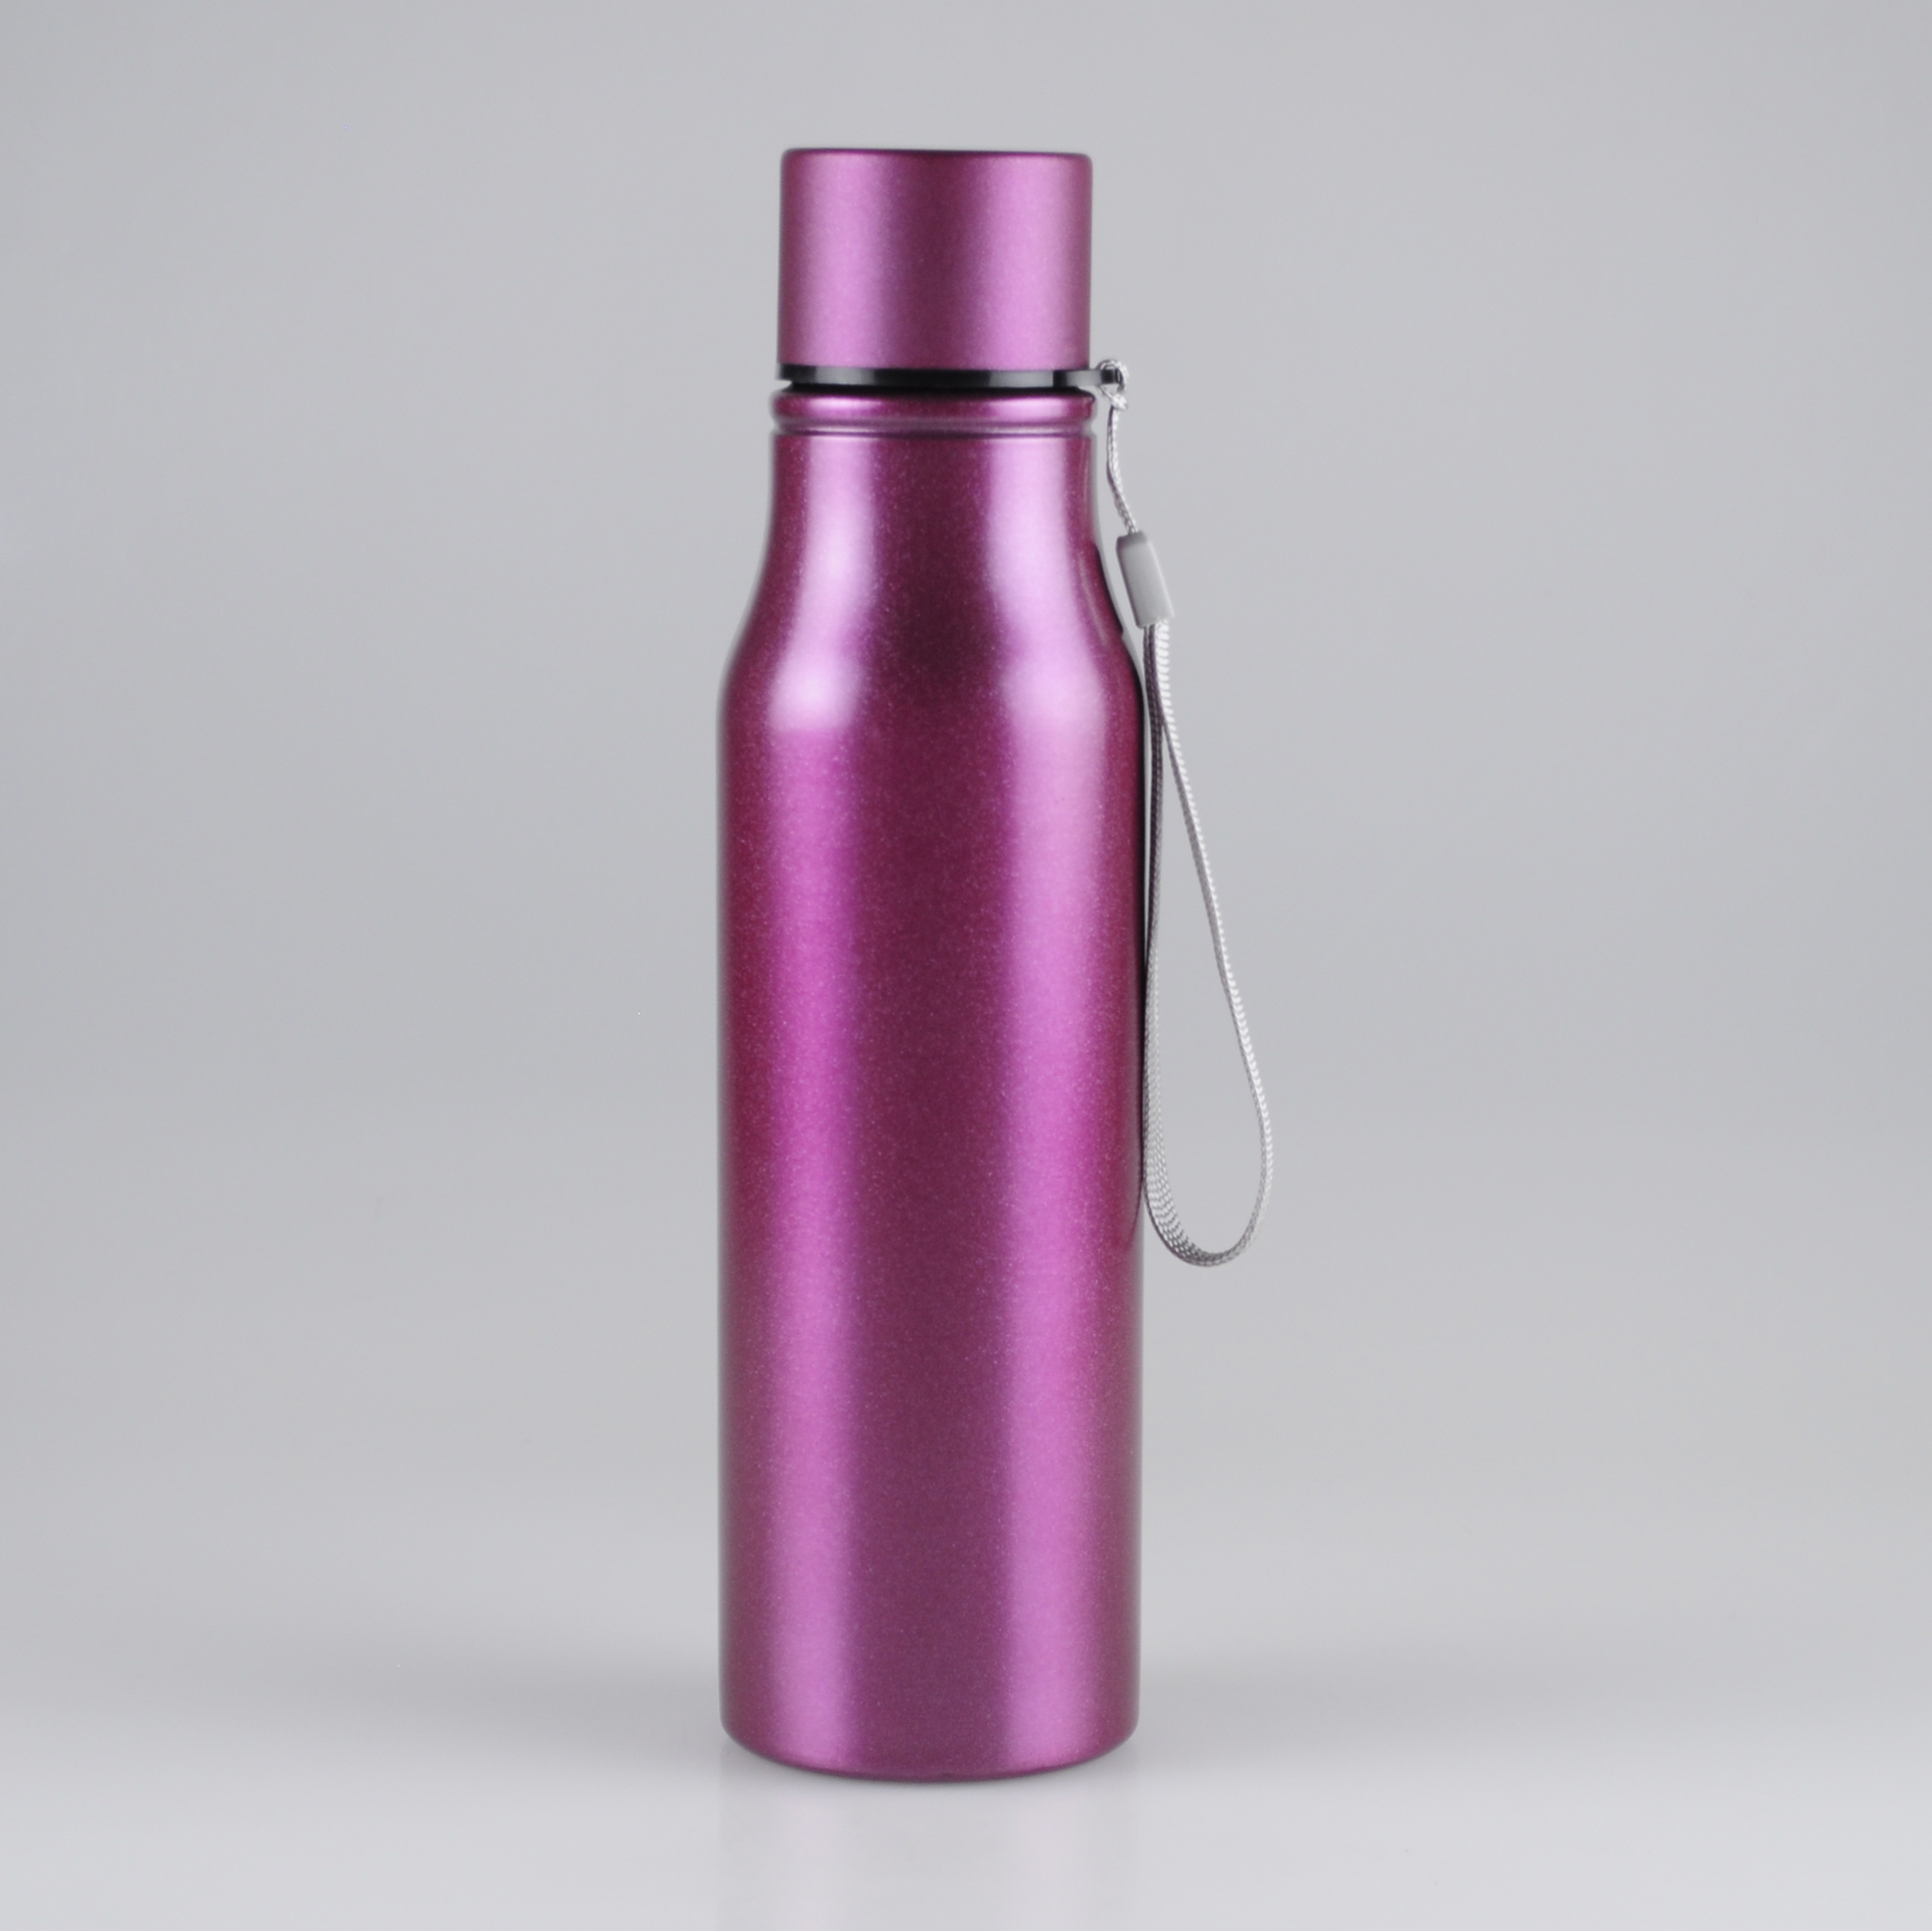 600ml-screwed-cap-stainless-steel-drink-bottles-with-carrying-strap (1)